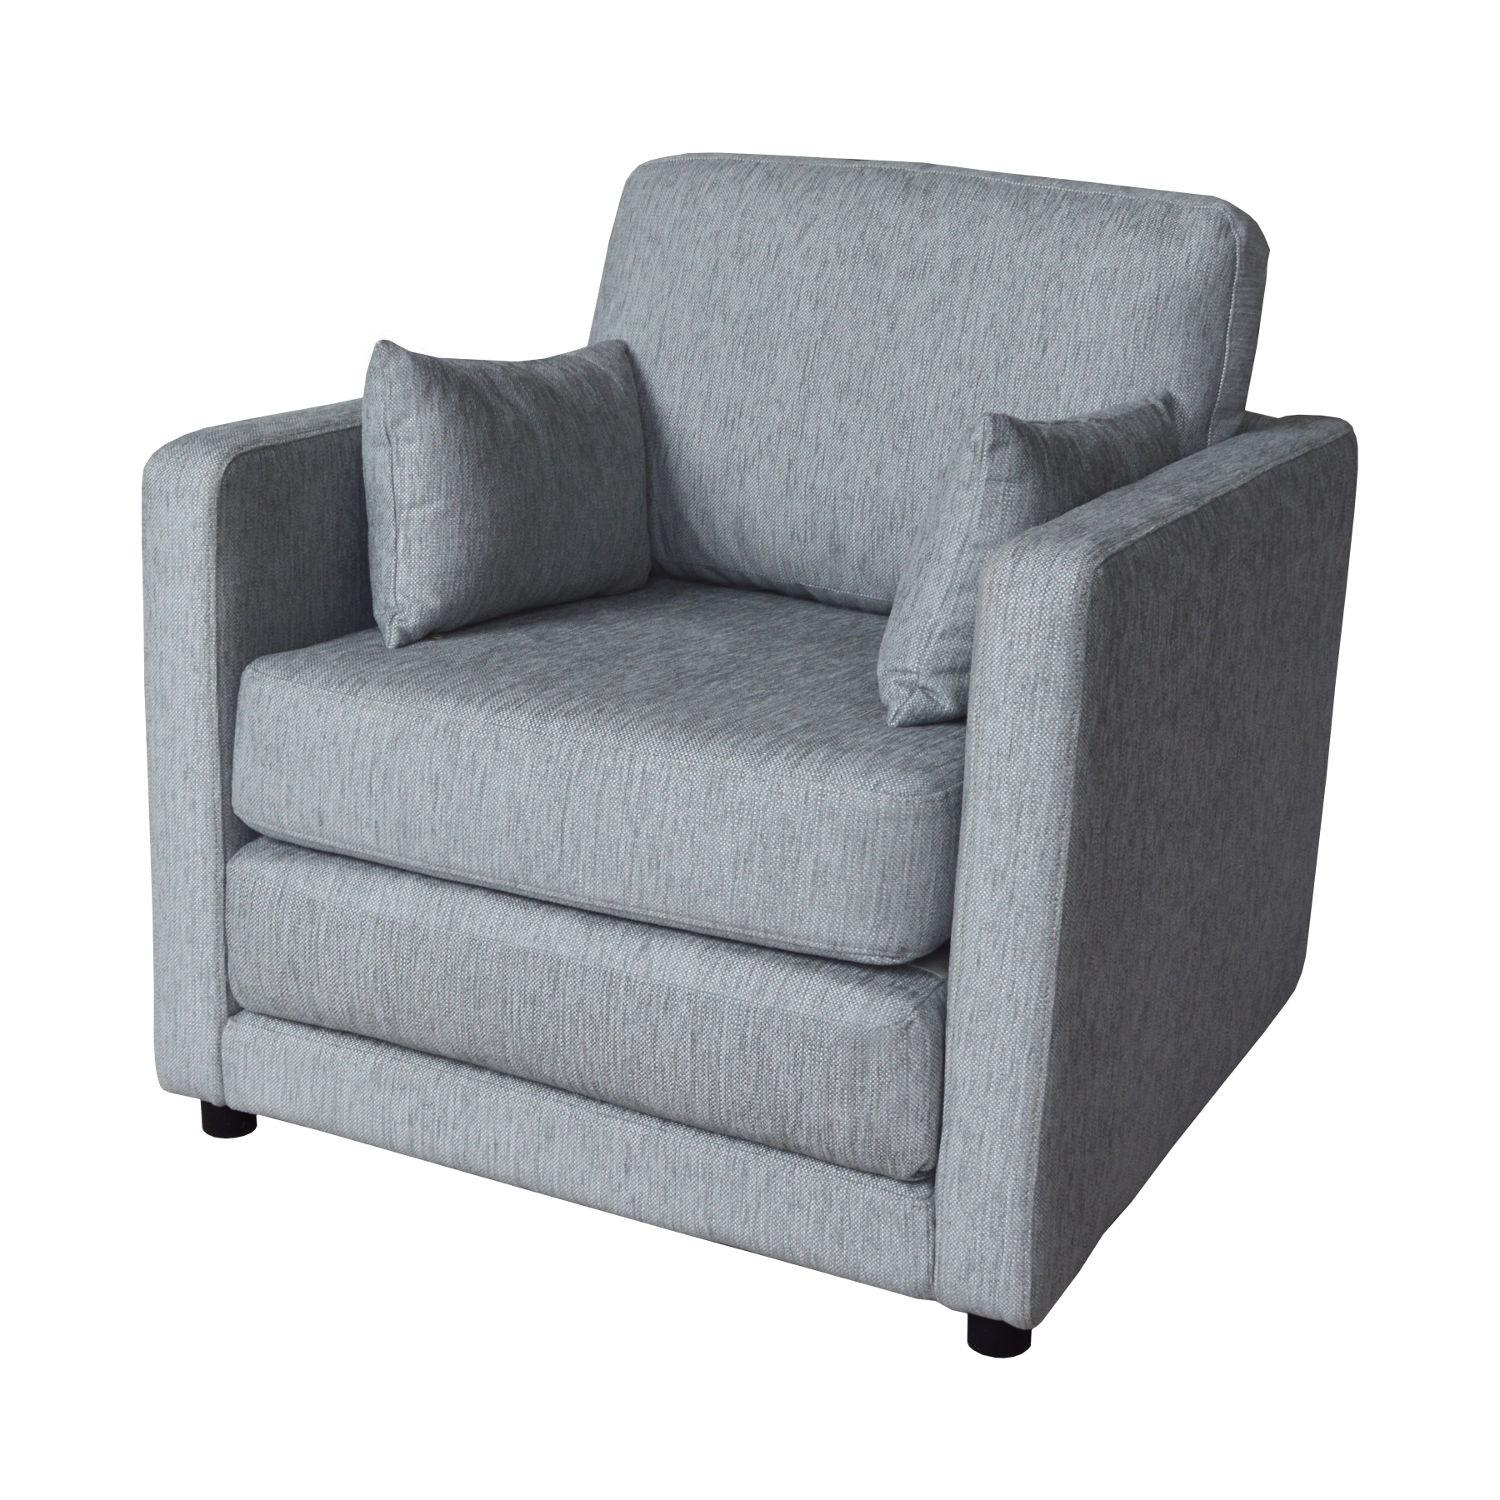 Sofa Bed Ebay Sydney: 20 Ideas Of Single Chair Sofa Bed